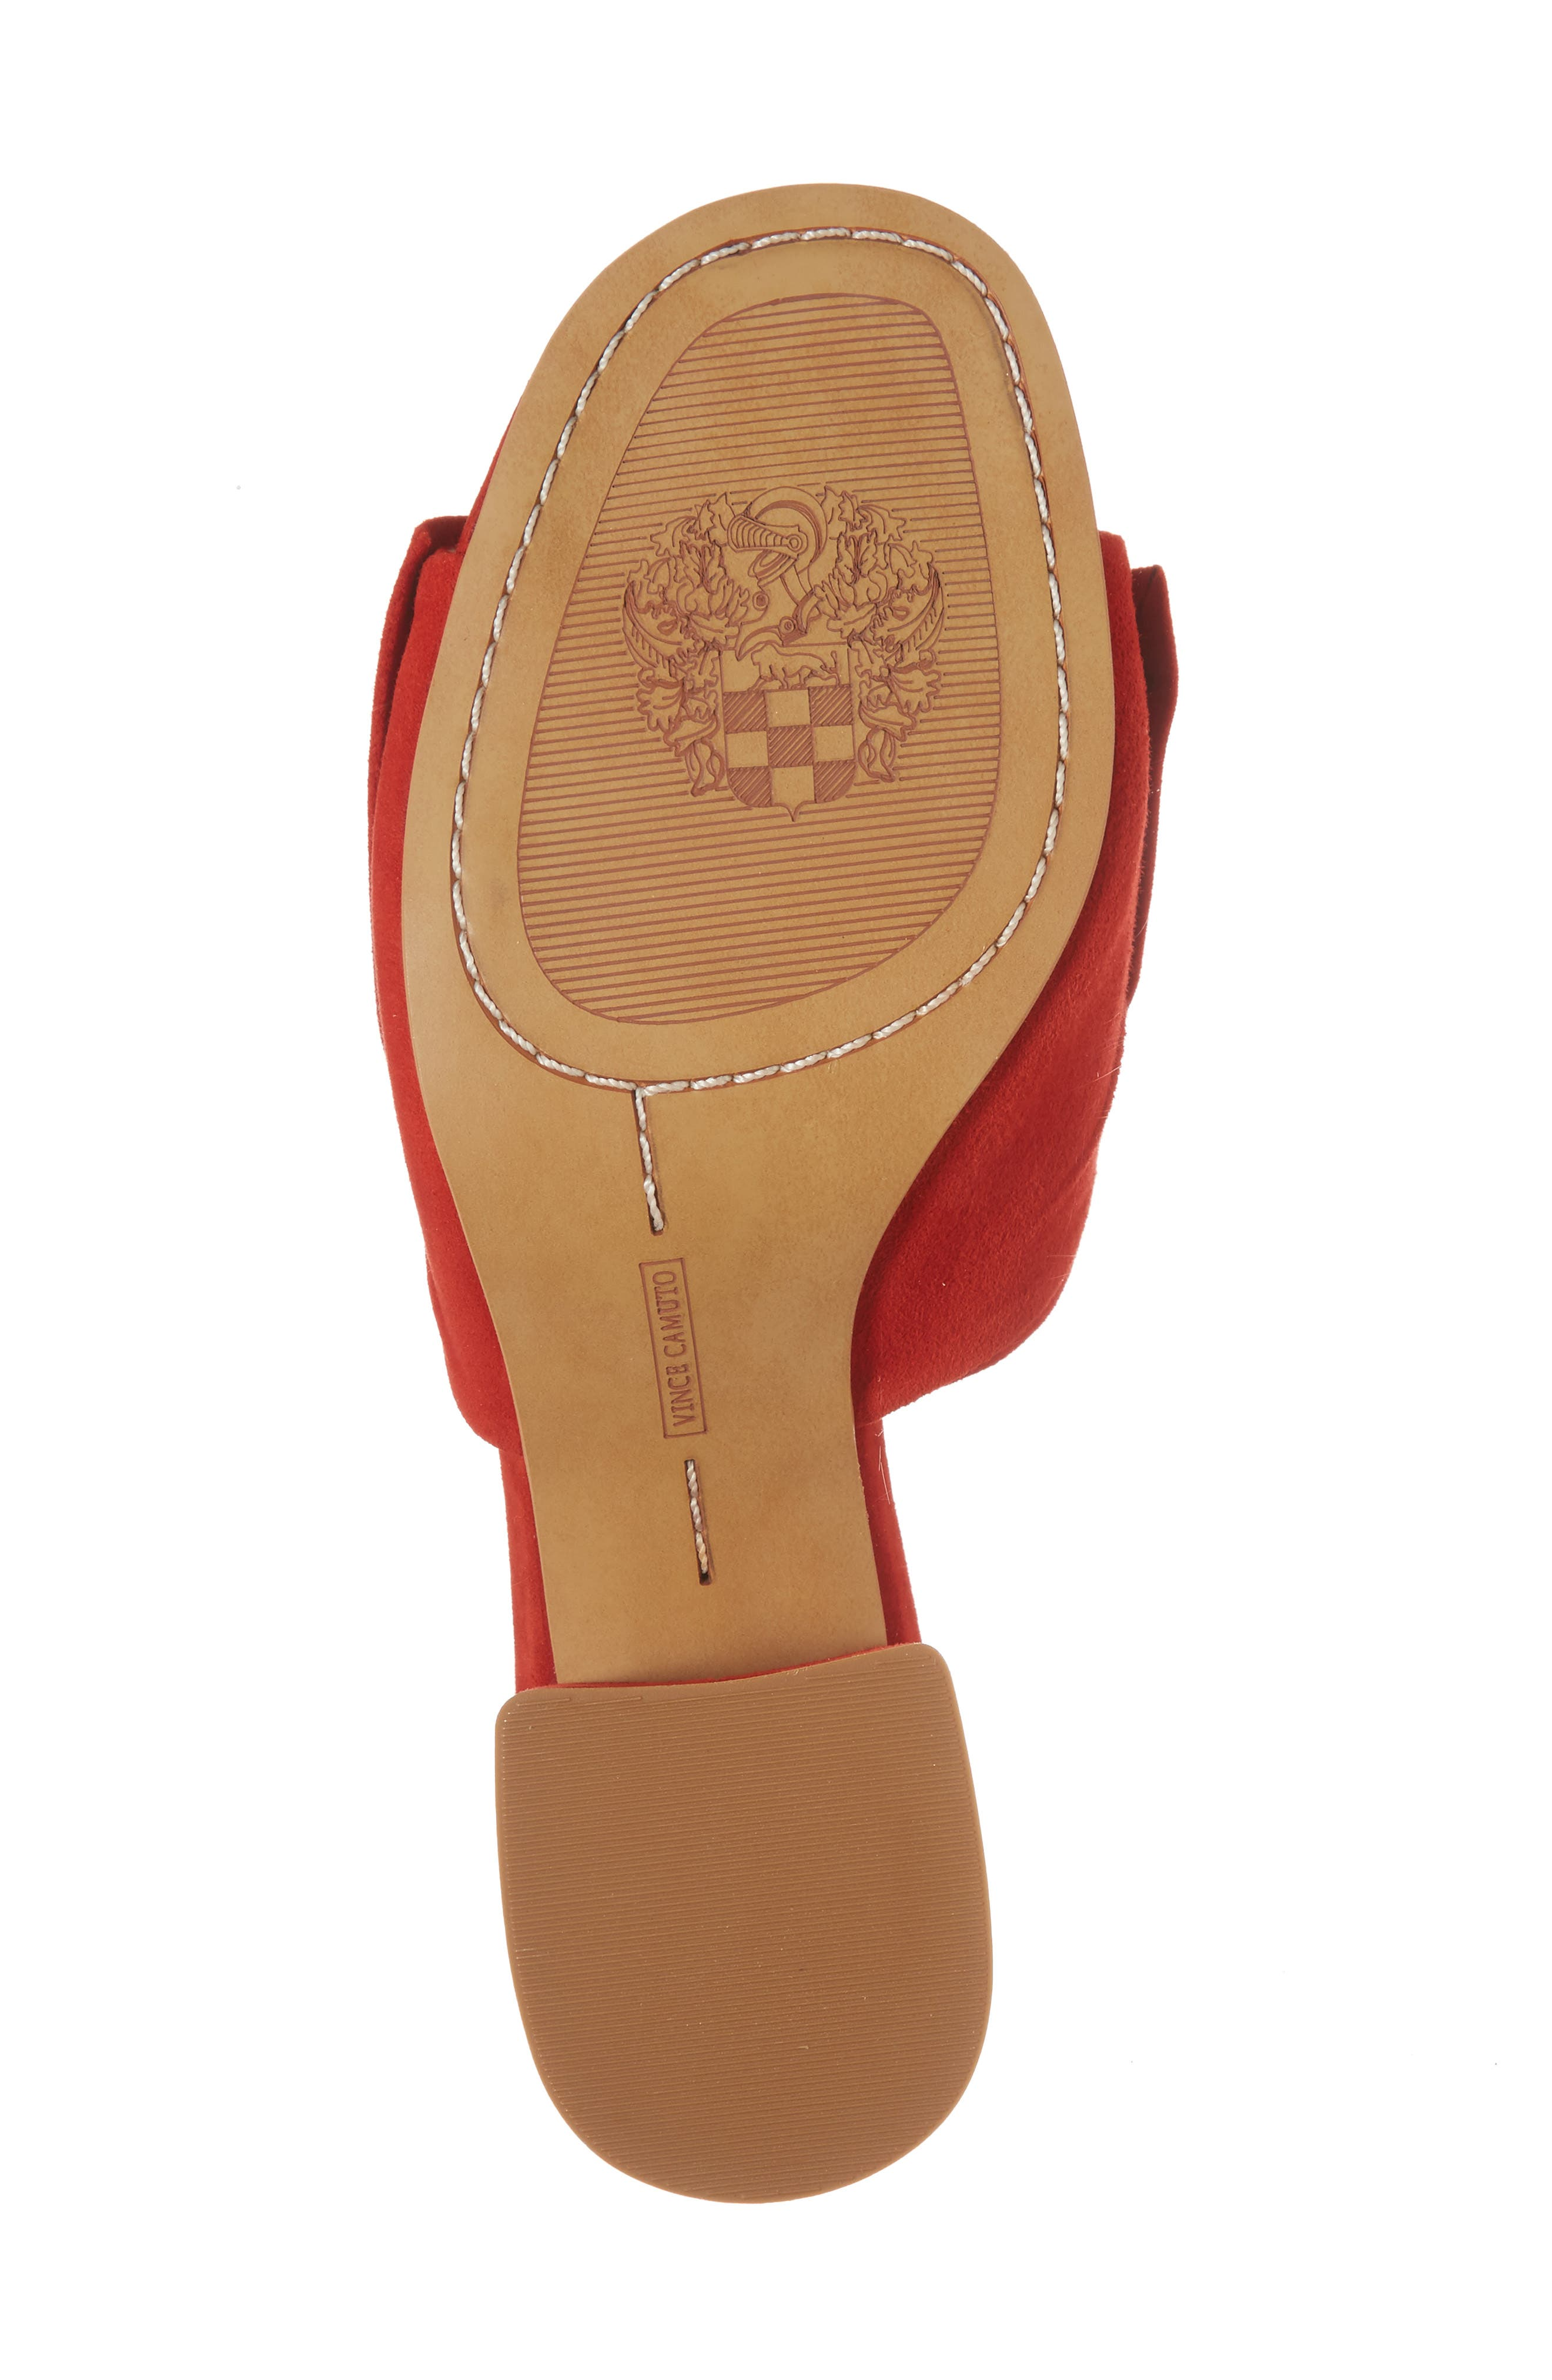 Sharrey Sandal,                             Alternate thumbnail 6, color,                             Red Hot Rio Suede